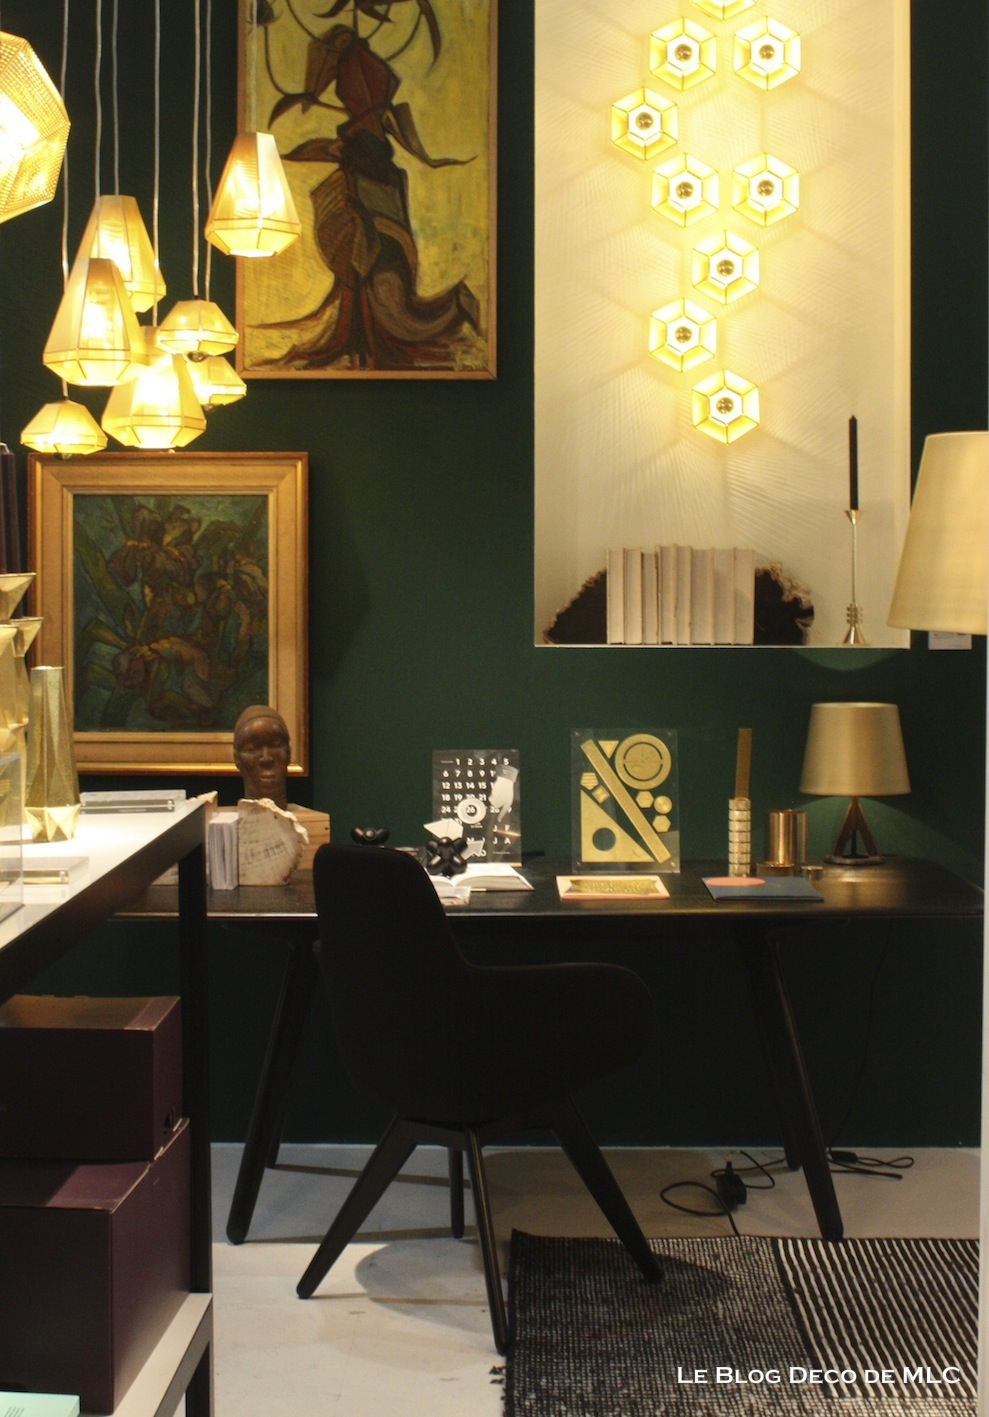 mur vert meraude et ses associations dans ma d co le blog d co de mlc. Black Bedroom Furniture Sets. Home Design Ideas